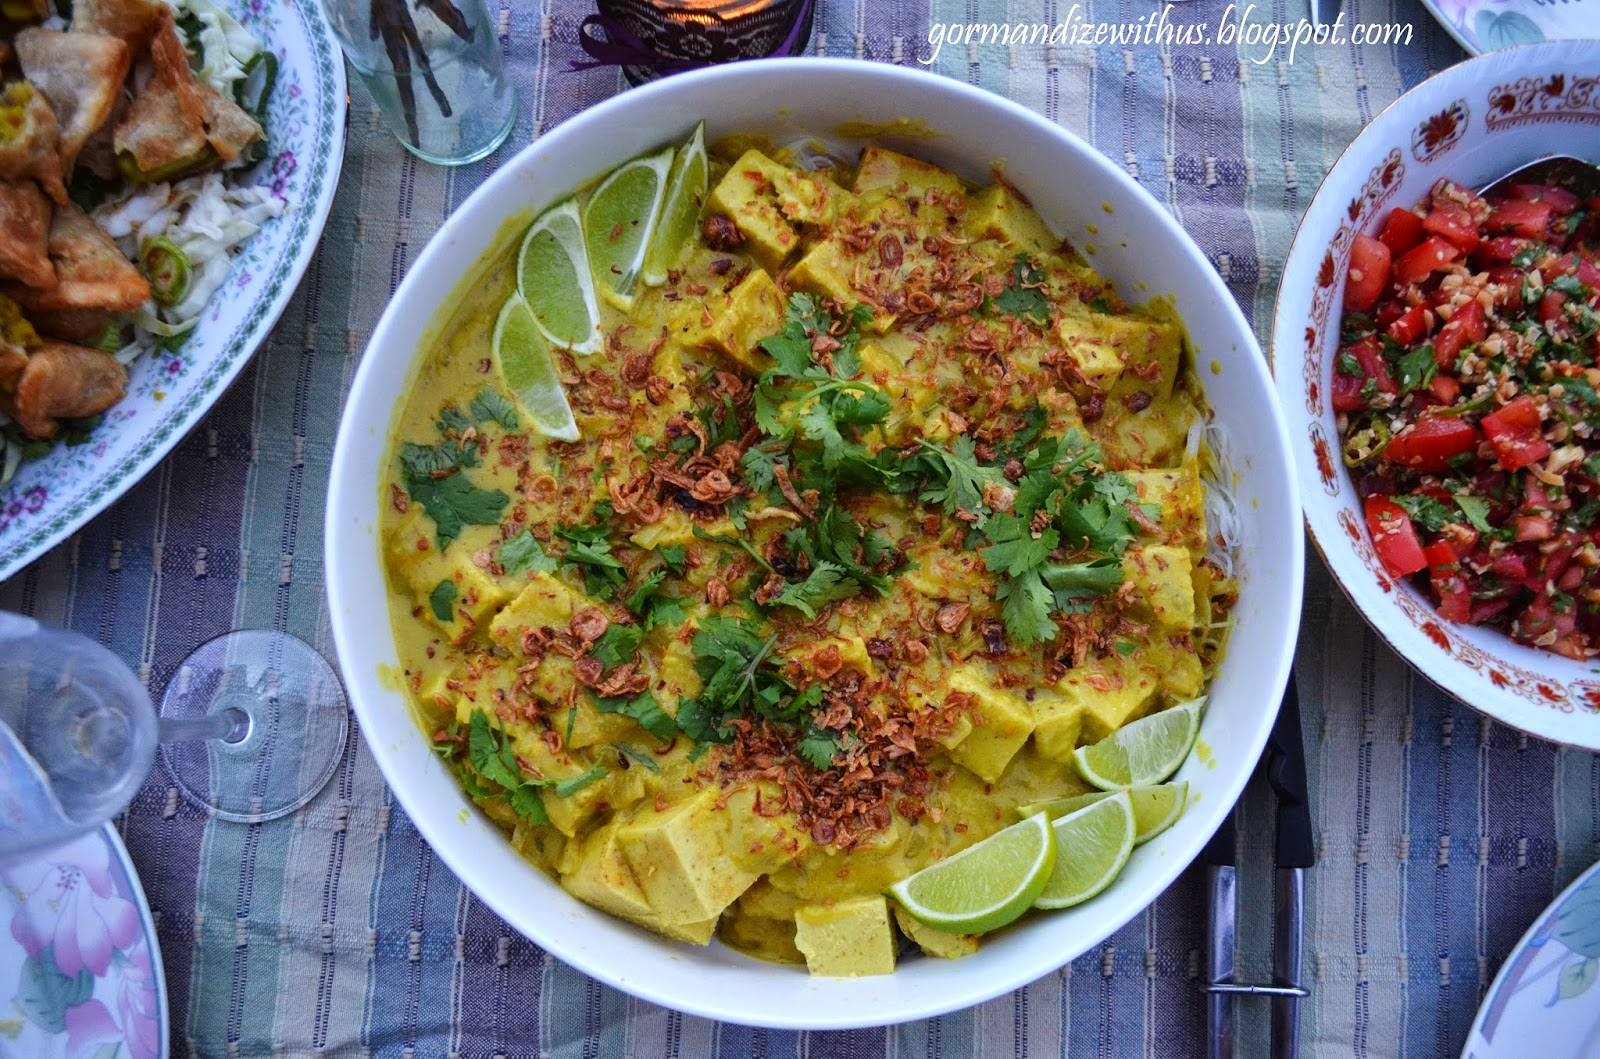 Gormandize vegan ohn no khao swe burmese noodles with chickpea tofu the first dish im sharing for burmese food month is ohn no khao swe one of the countries most common and popular dishes its traditionally made with forumfinder Choice Image